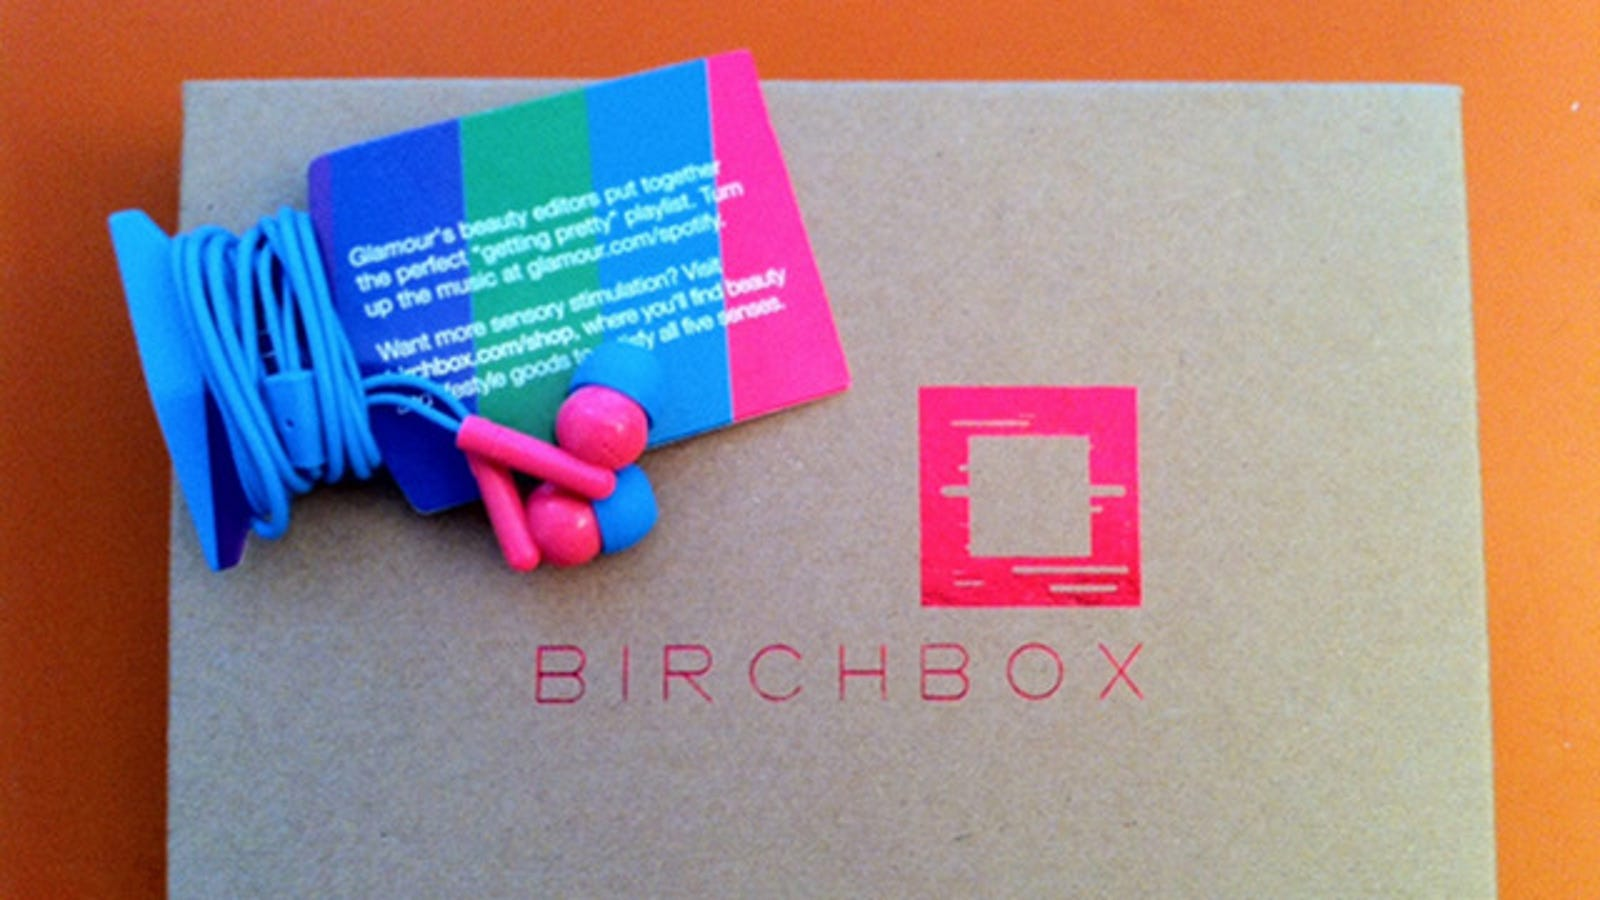 earphone jack keychain - Birchbox: At Least Those Crappy Earbuds Are Cute!